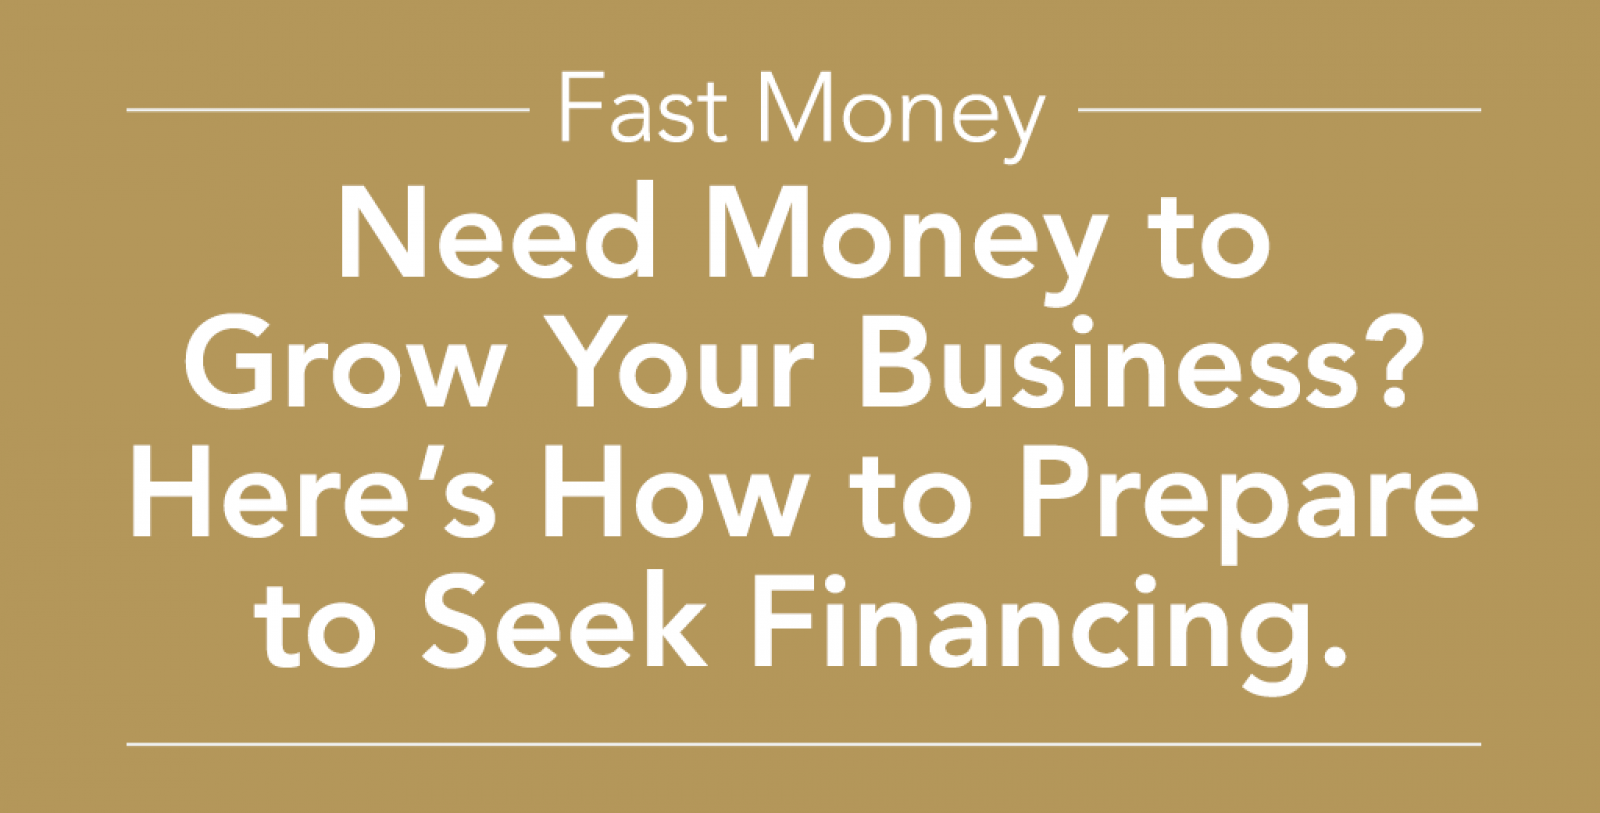 Need Money to Grow Your Business?